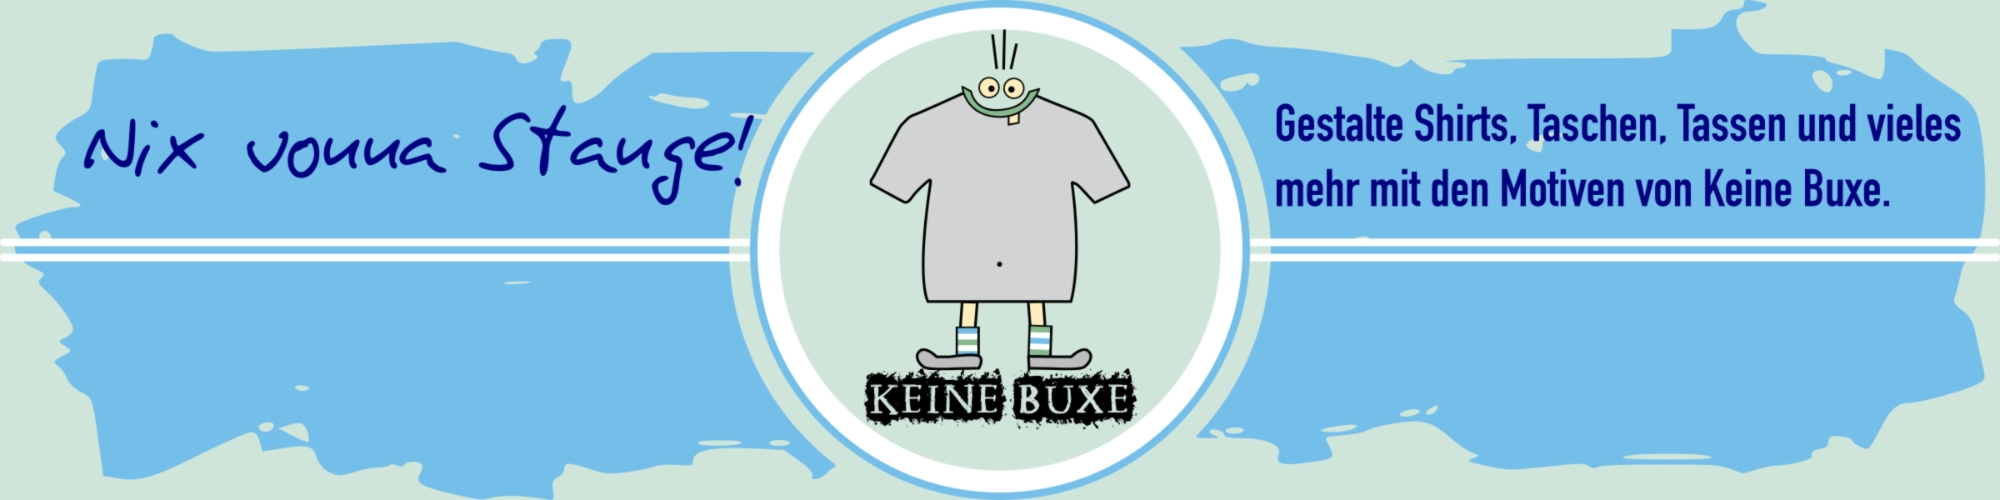 Showroom - KeineBuxe